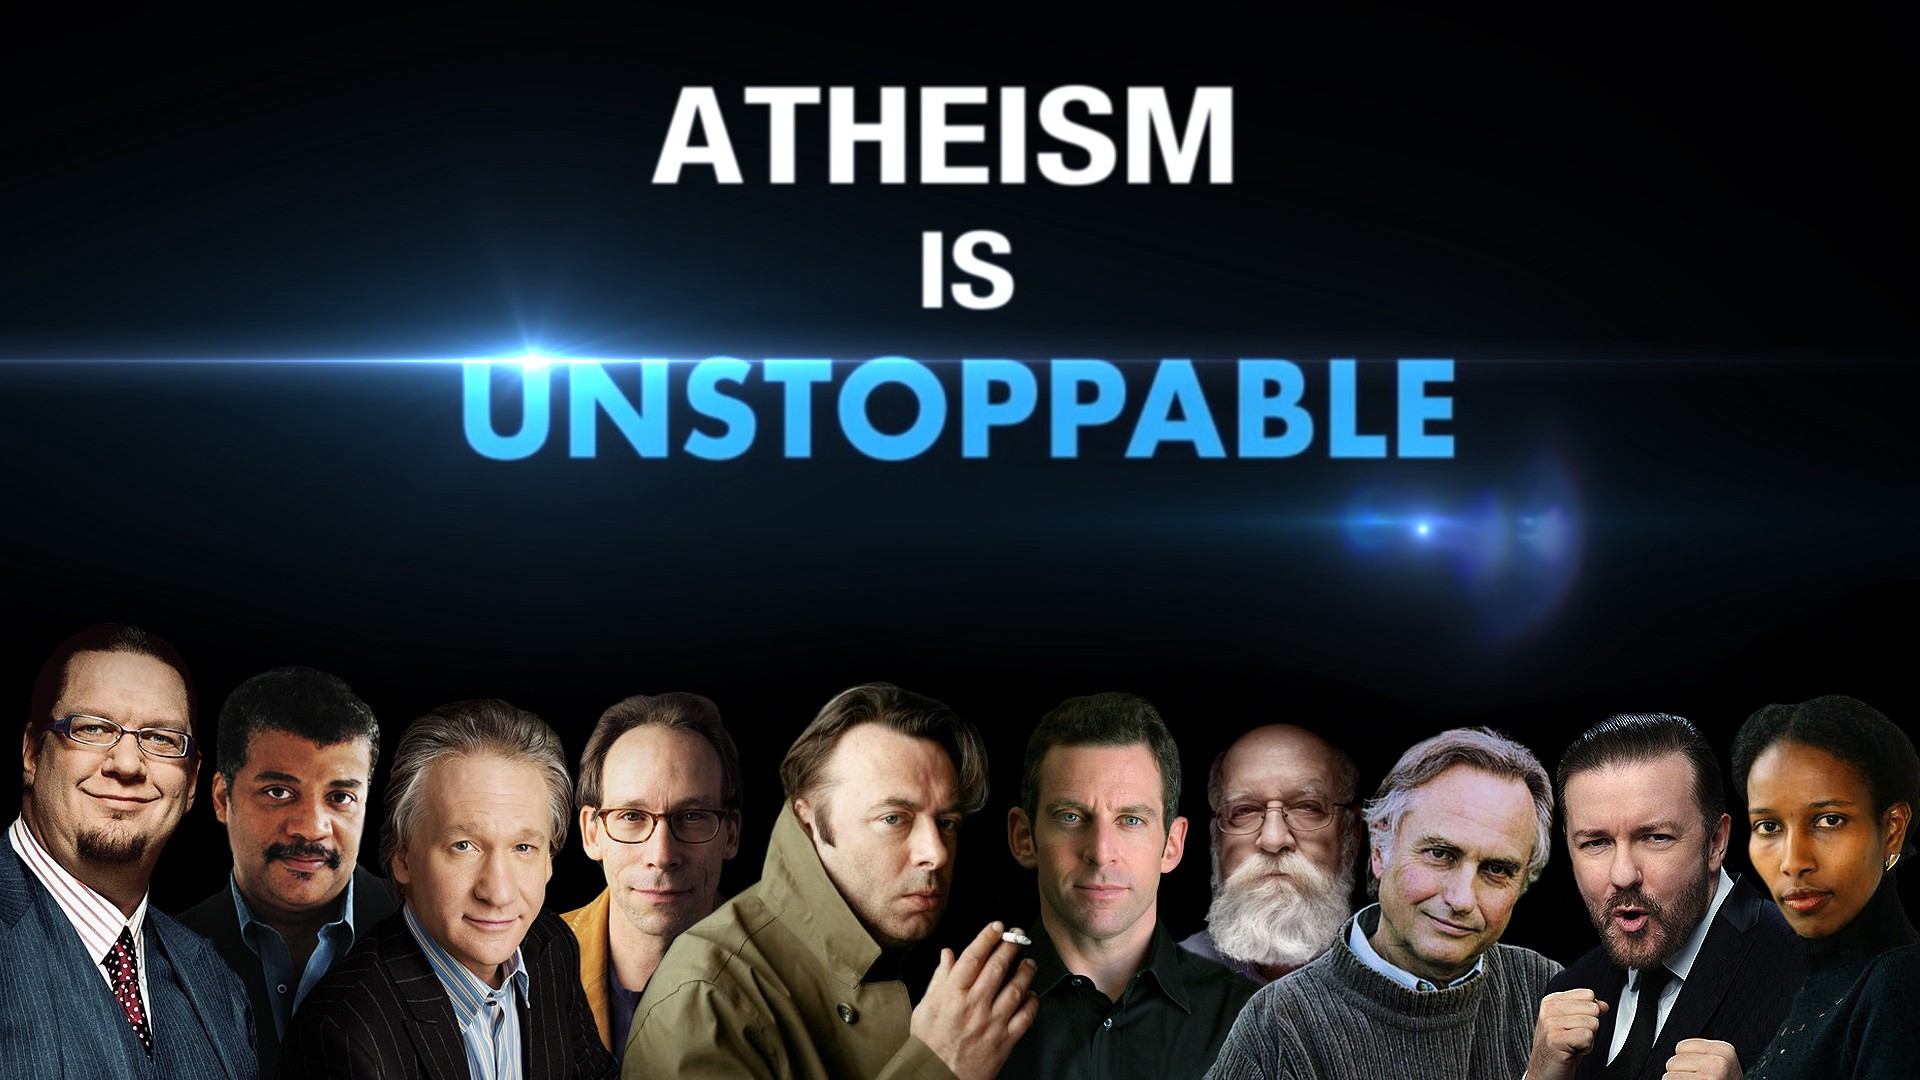 Knows it. christopher hitchens blowjob phrase